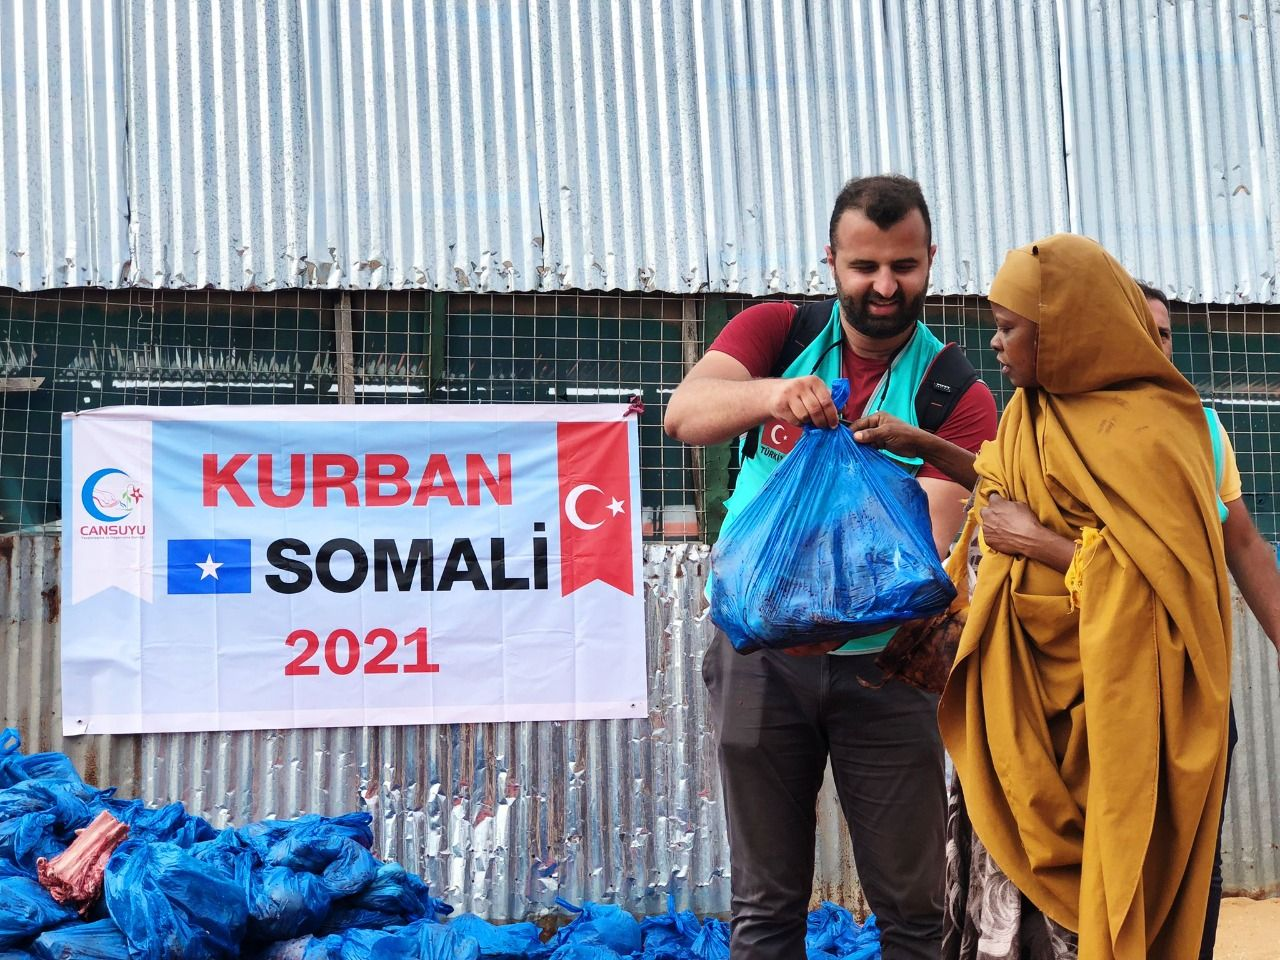 Cansuyu delivers Qurban meat to 1 million people